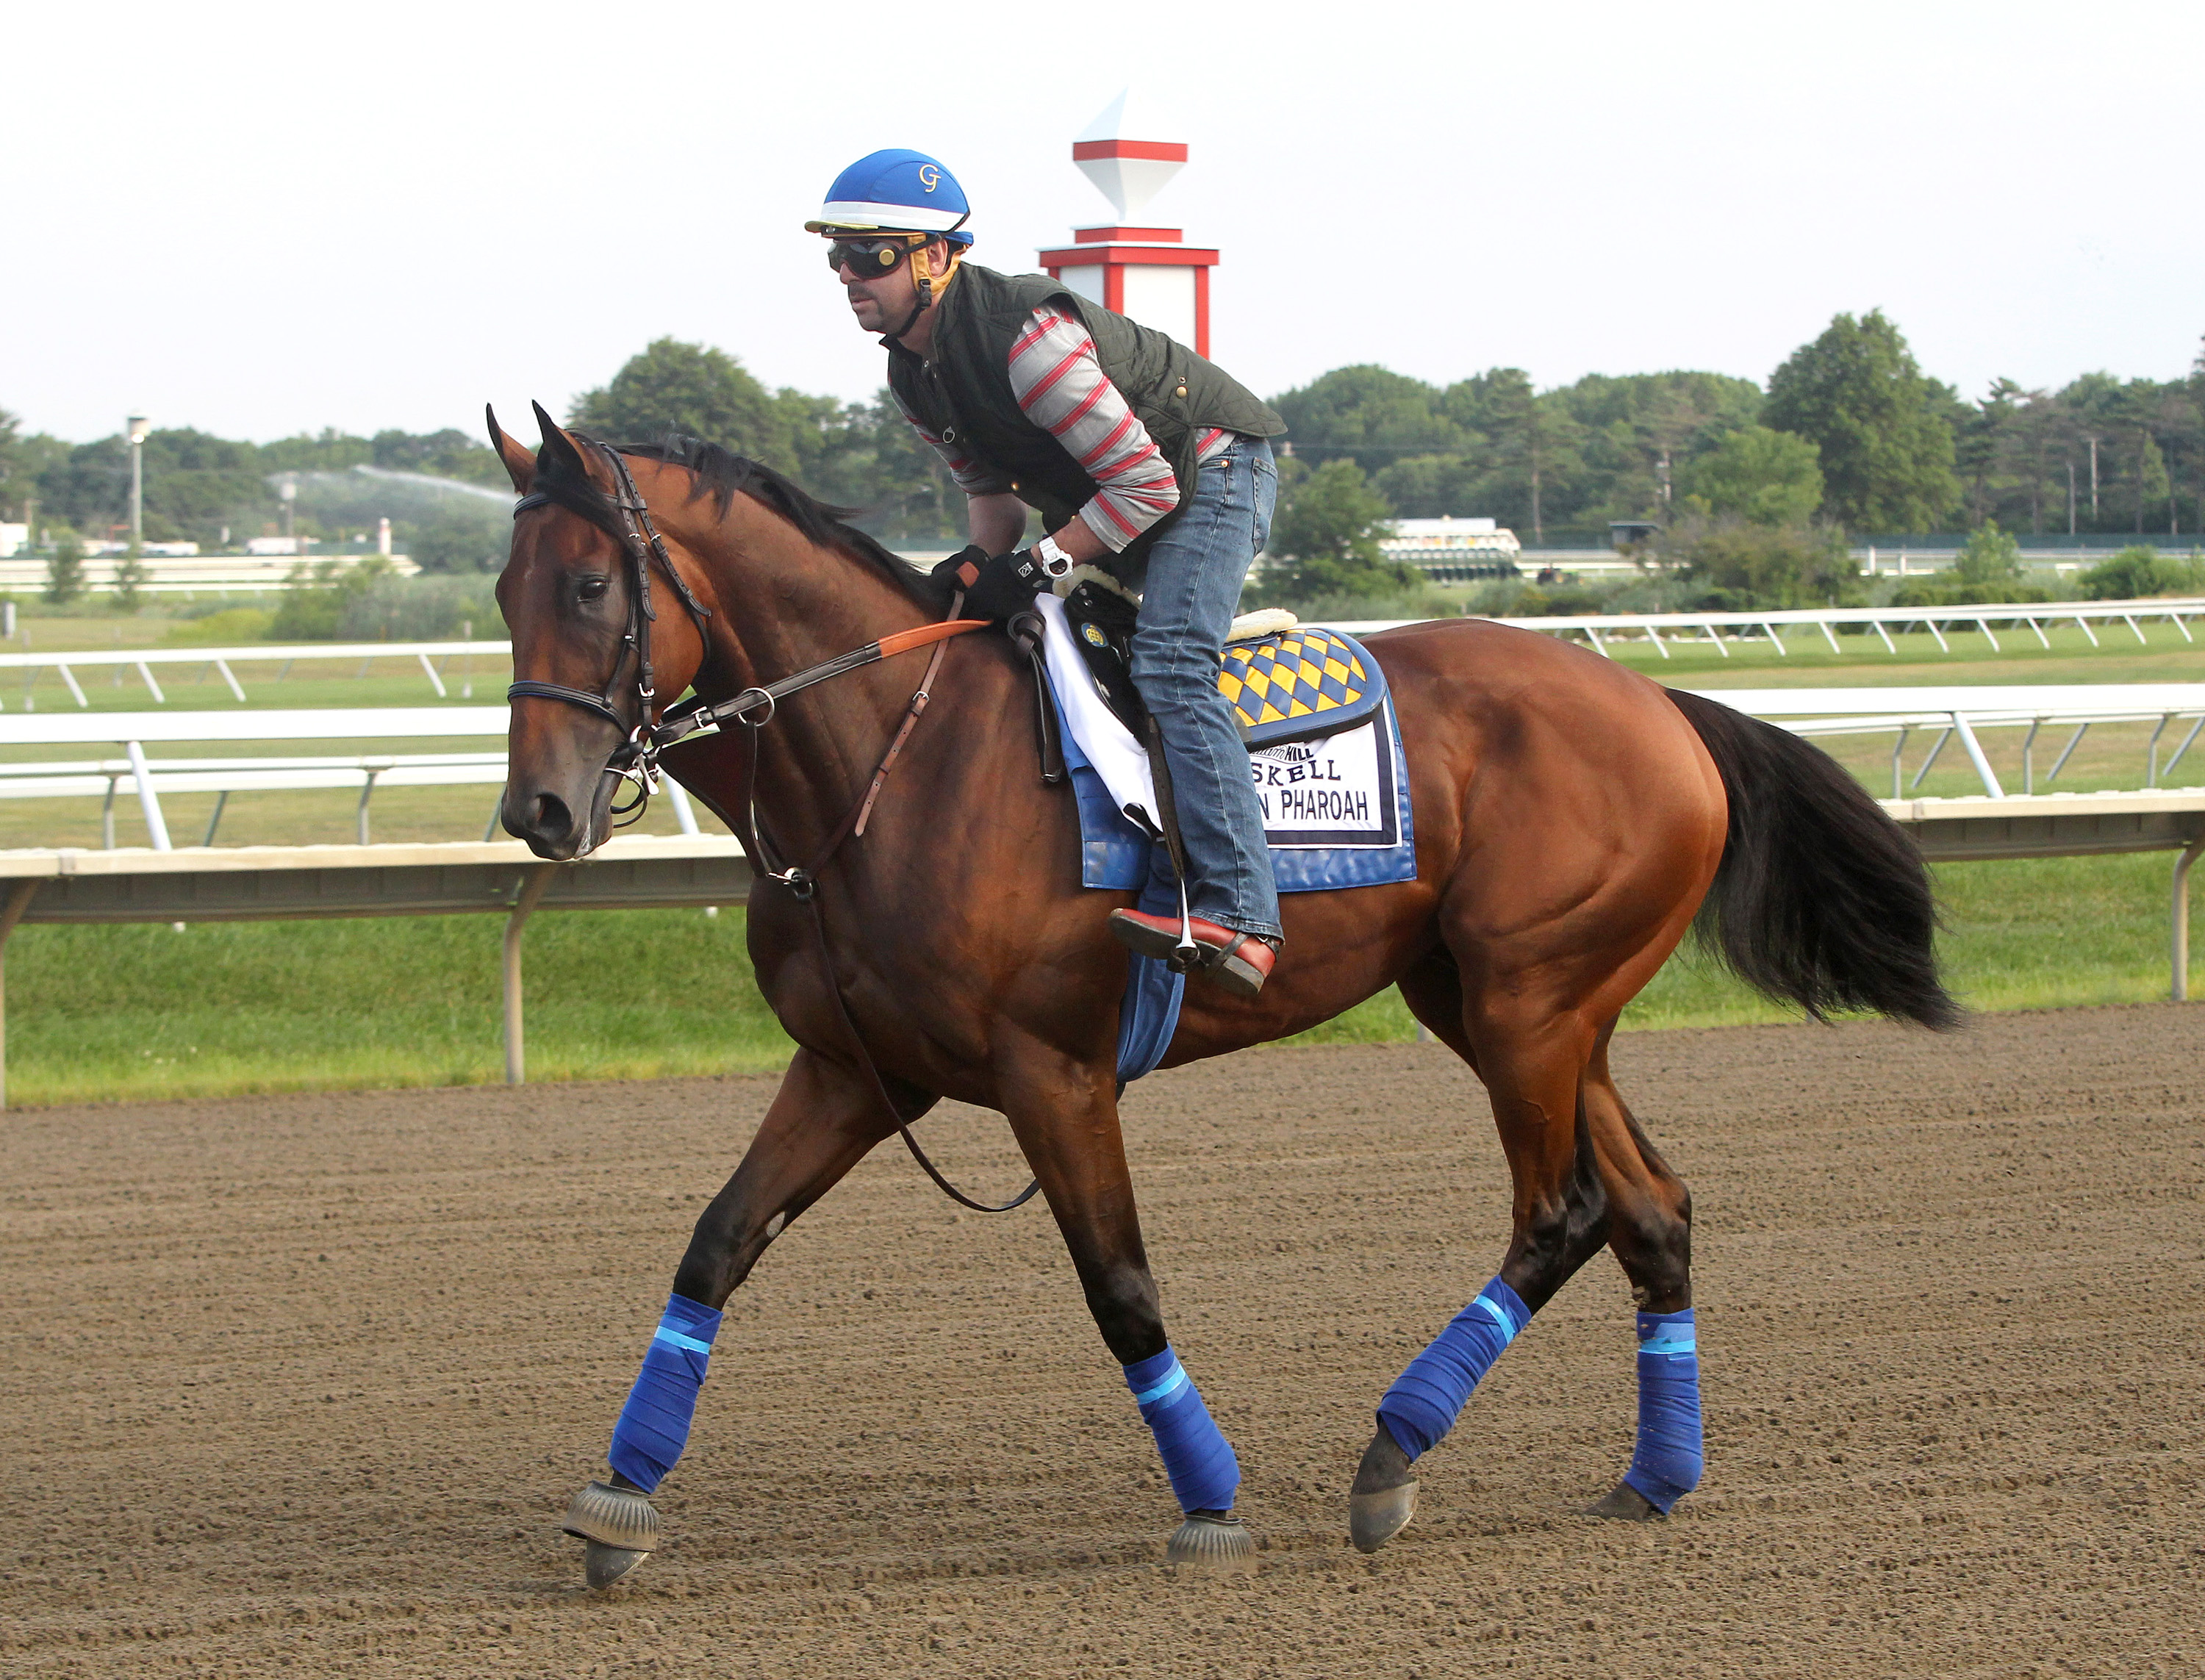 In this photo provided by Equi-Photo, Triple Crown winner American Pharoah with exercise rider Jorge Alvarez up, trains at Monmouth Park in Oceanport, N.J., Thursday, July 30, 2015. American Pharoah is expected to run in the Haskell Invitational at Monmou